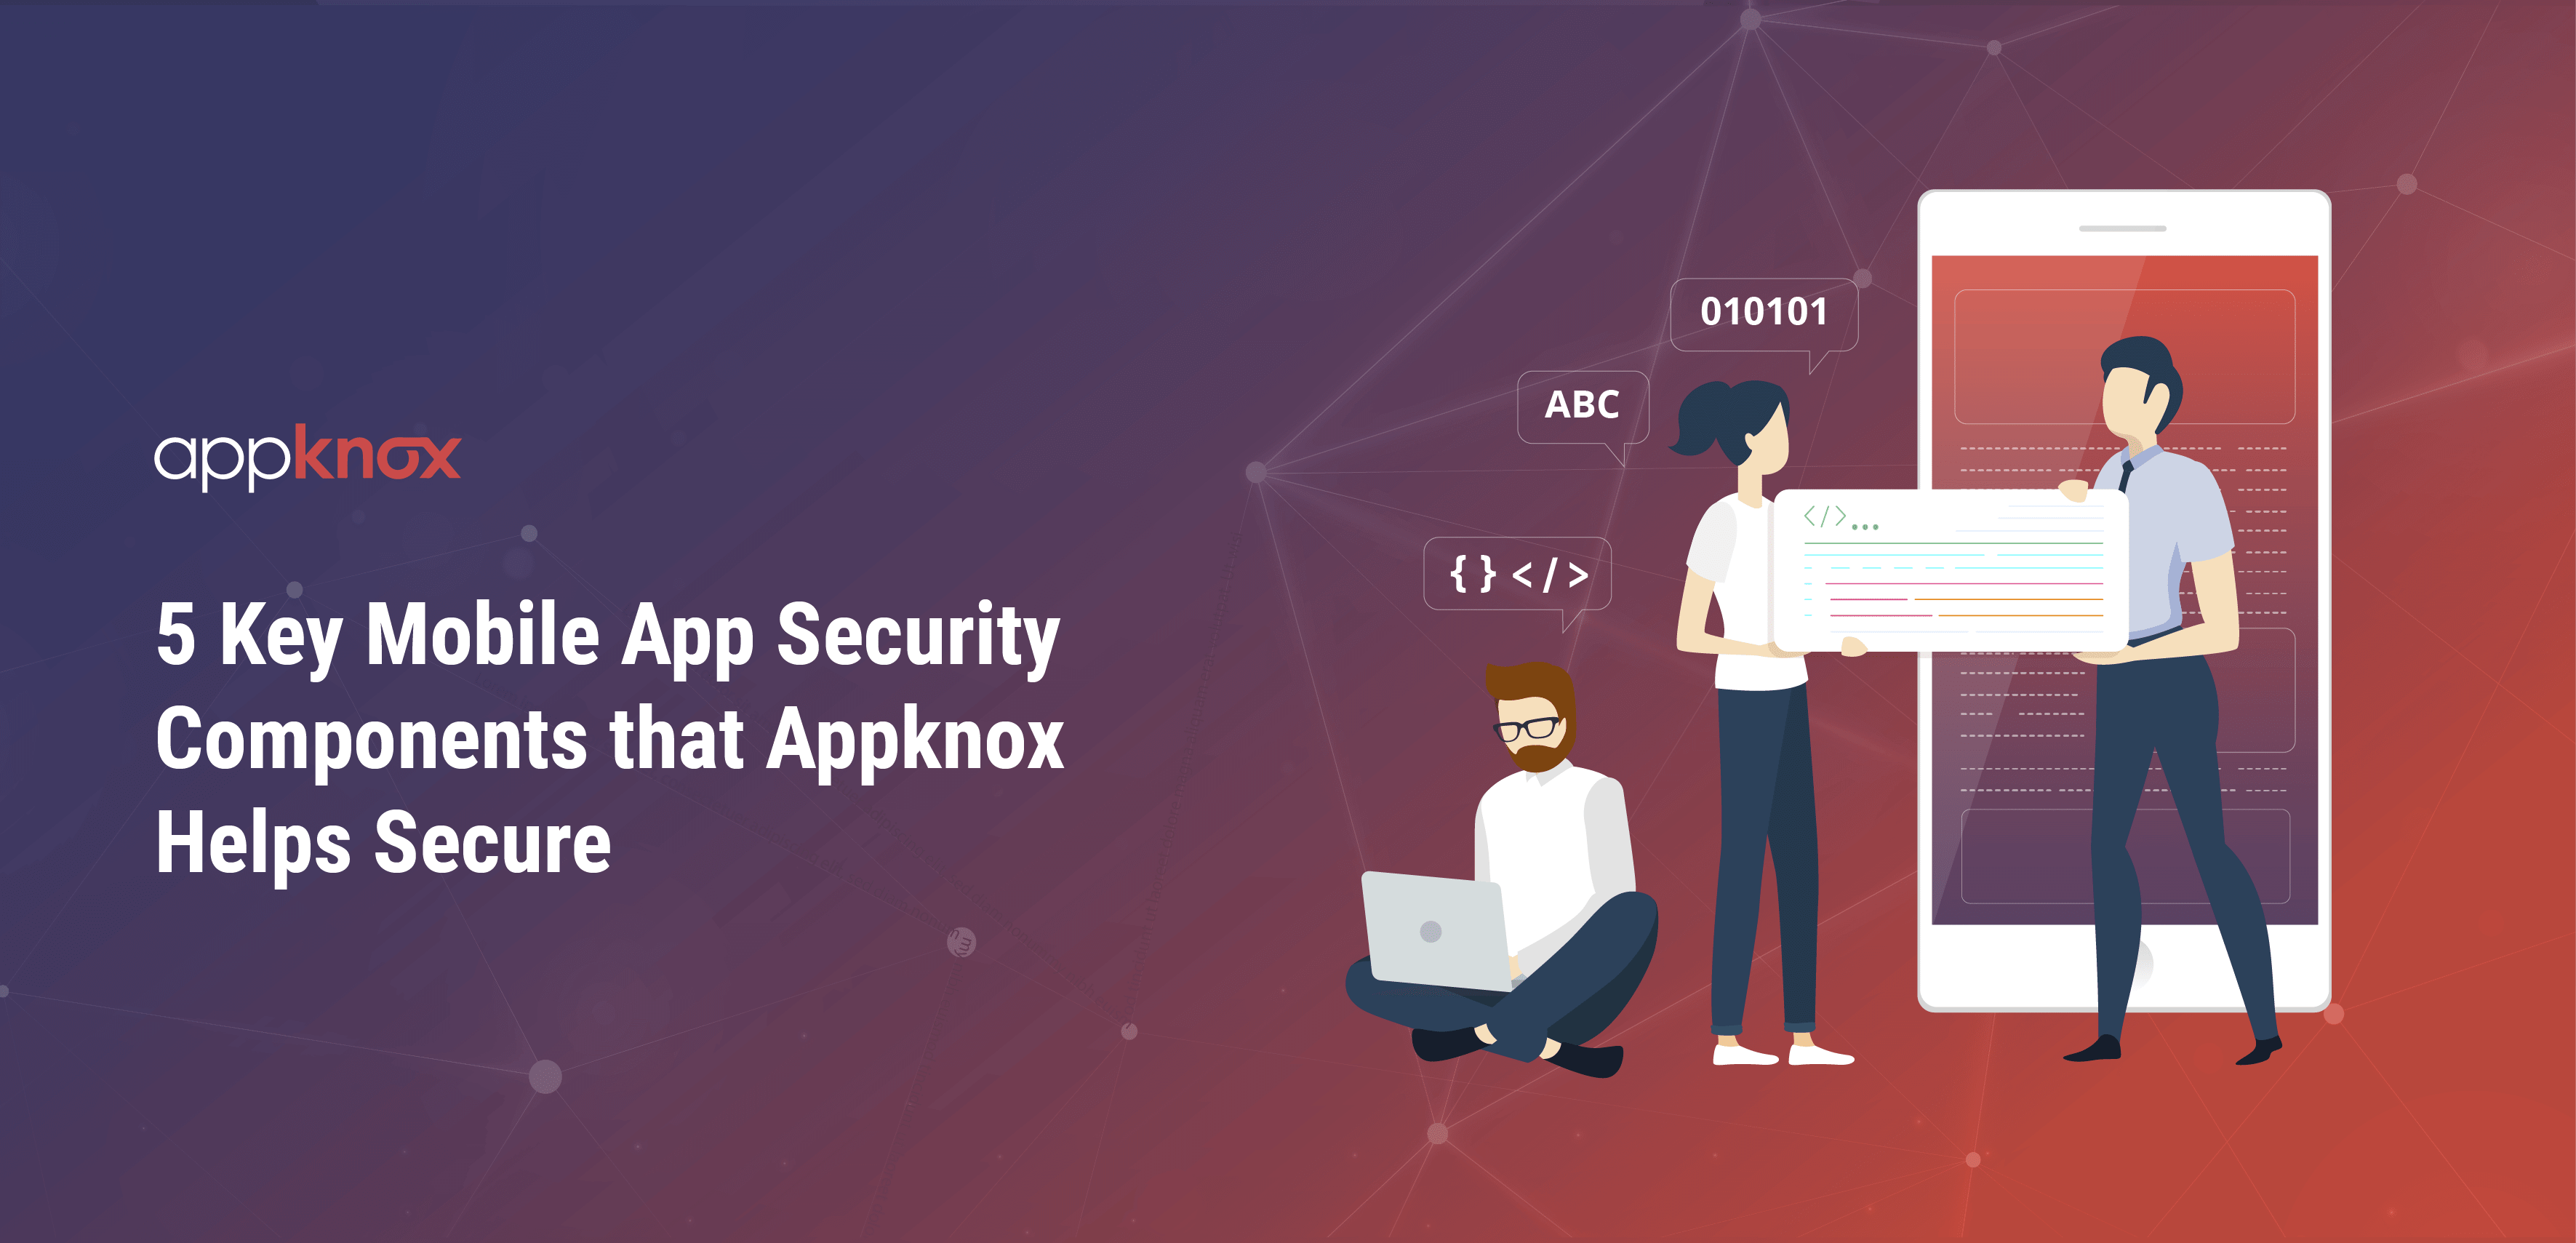 5 Key Mobile App Security Components that Appknox Helps Secure